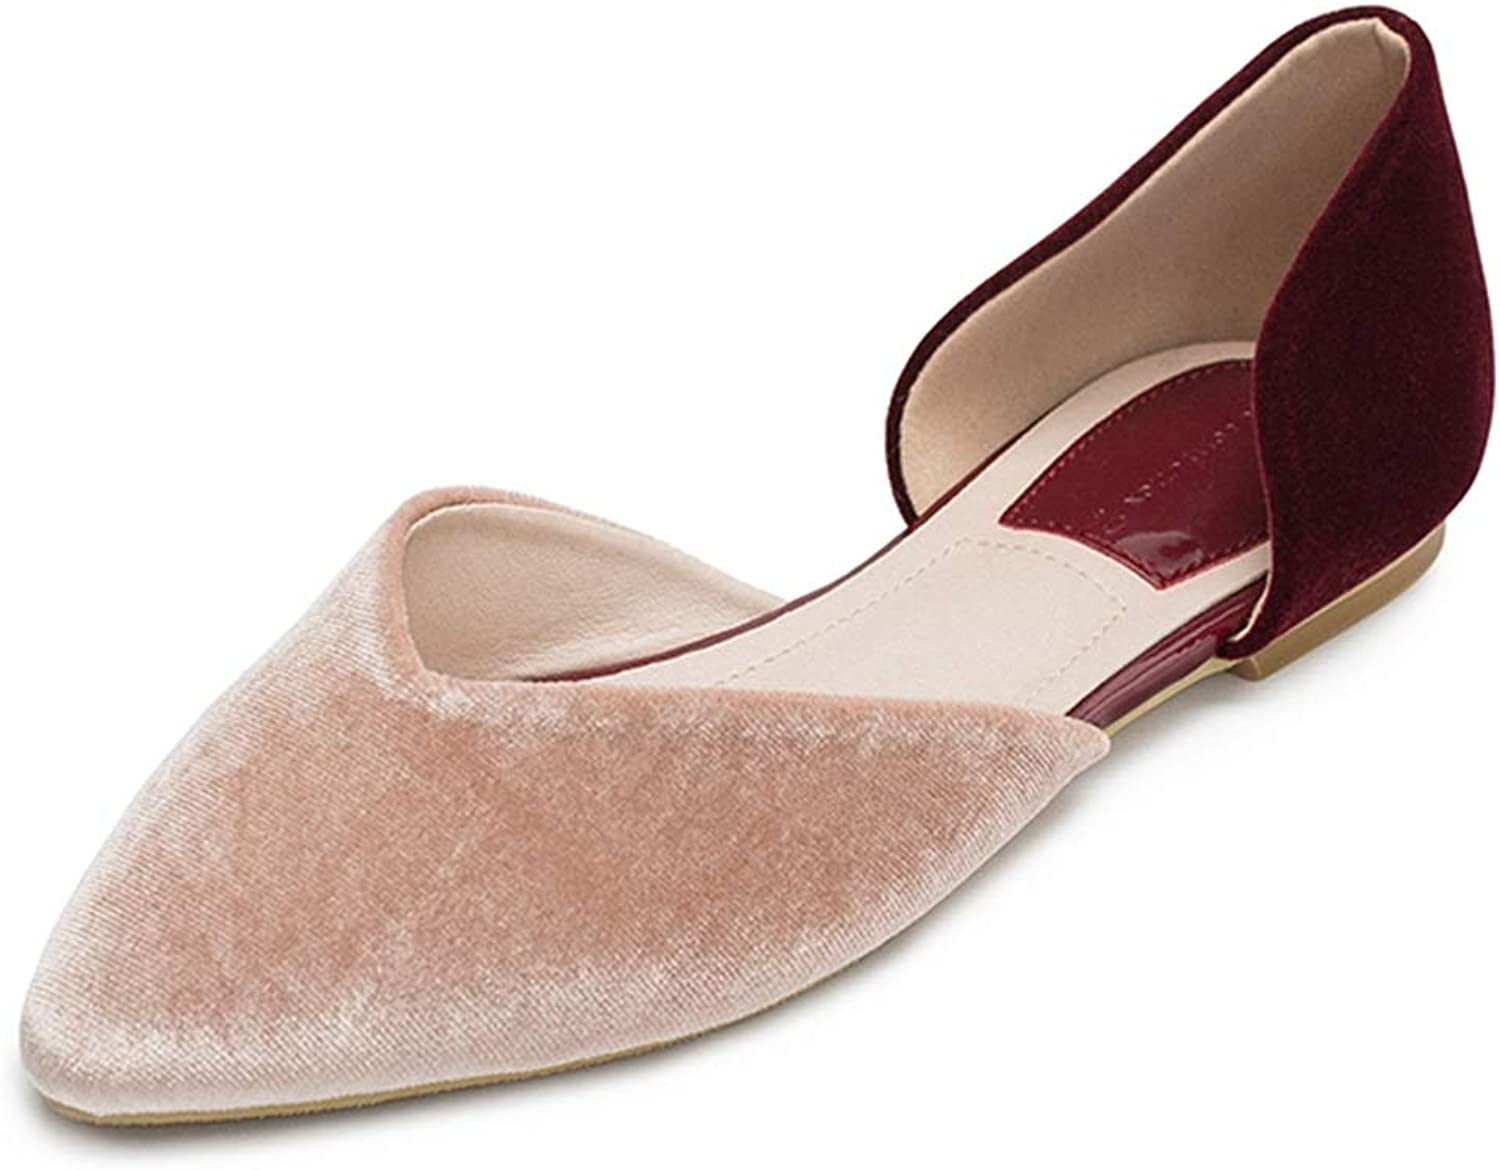 Women's Flat shoes Spring and Summer Sandals Women's Hollow Single shoes Pointed Sandals Cute Gentle Evening shoes Holiday Slippers Summer Women's shoes Ladies (color   Nude Pink, Size   35 US5.5)